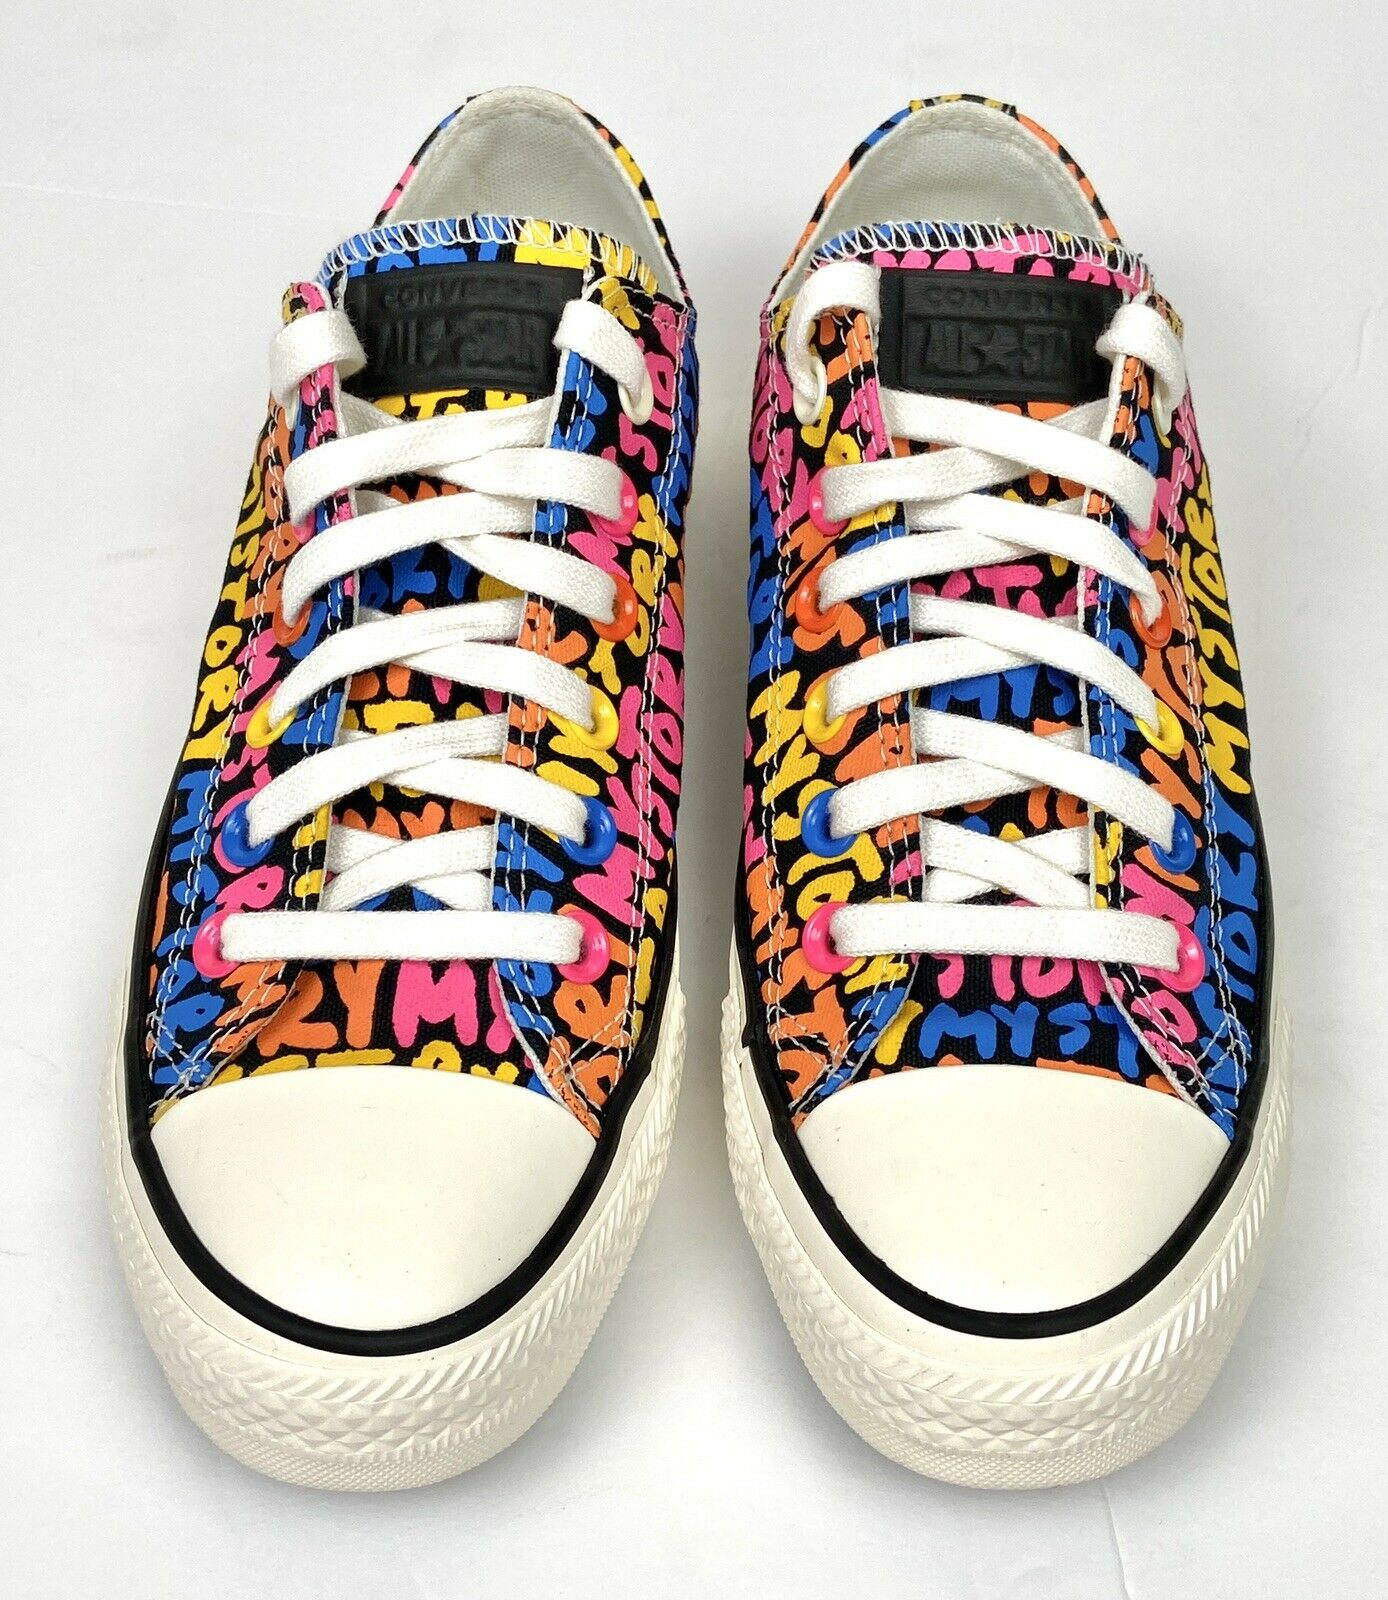 Converse All Star My Story Low Top Sneakers Women's Size 7.5 570487F